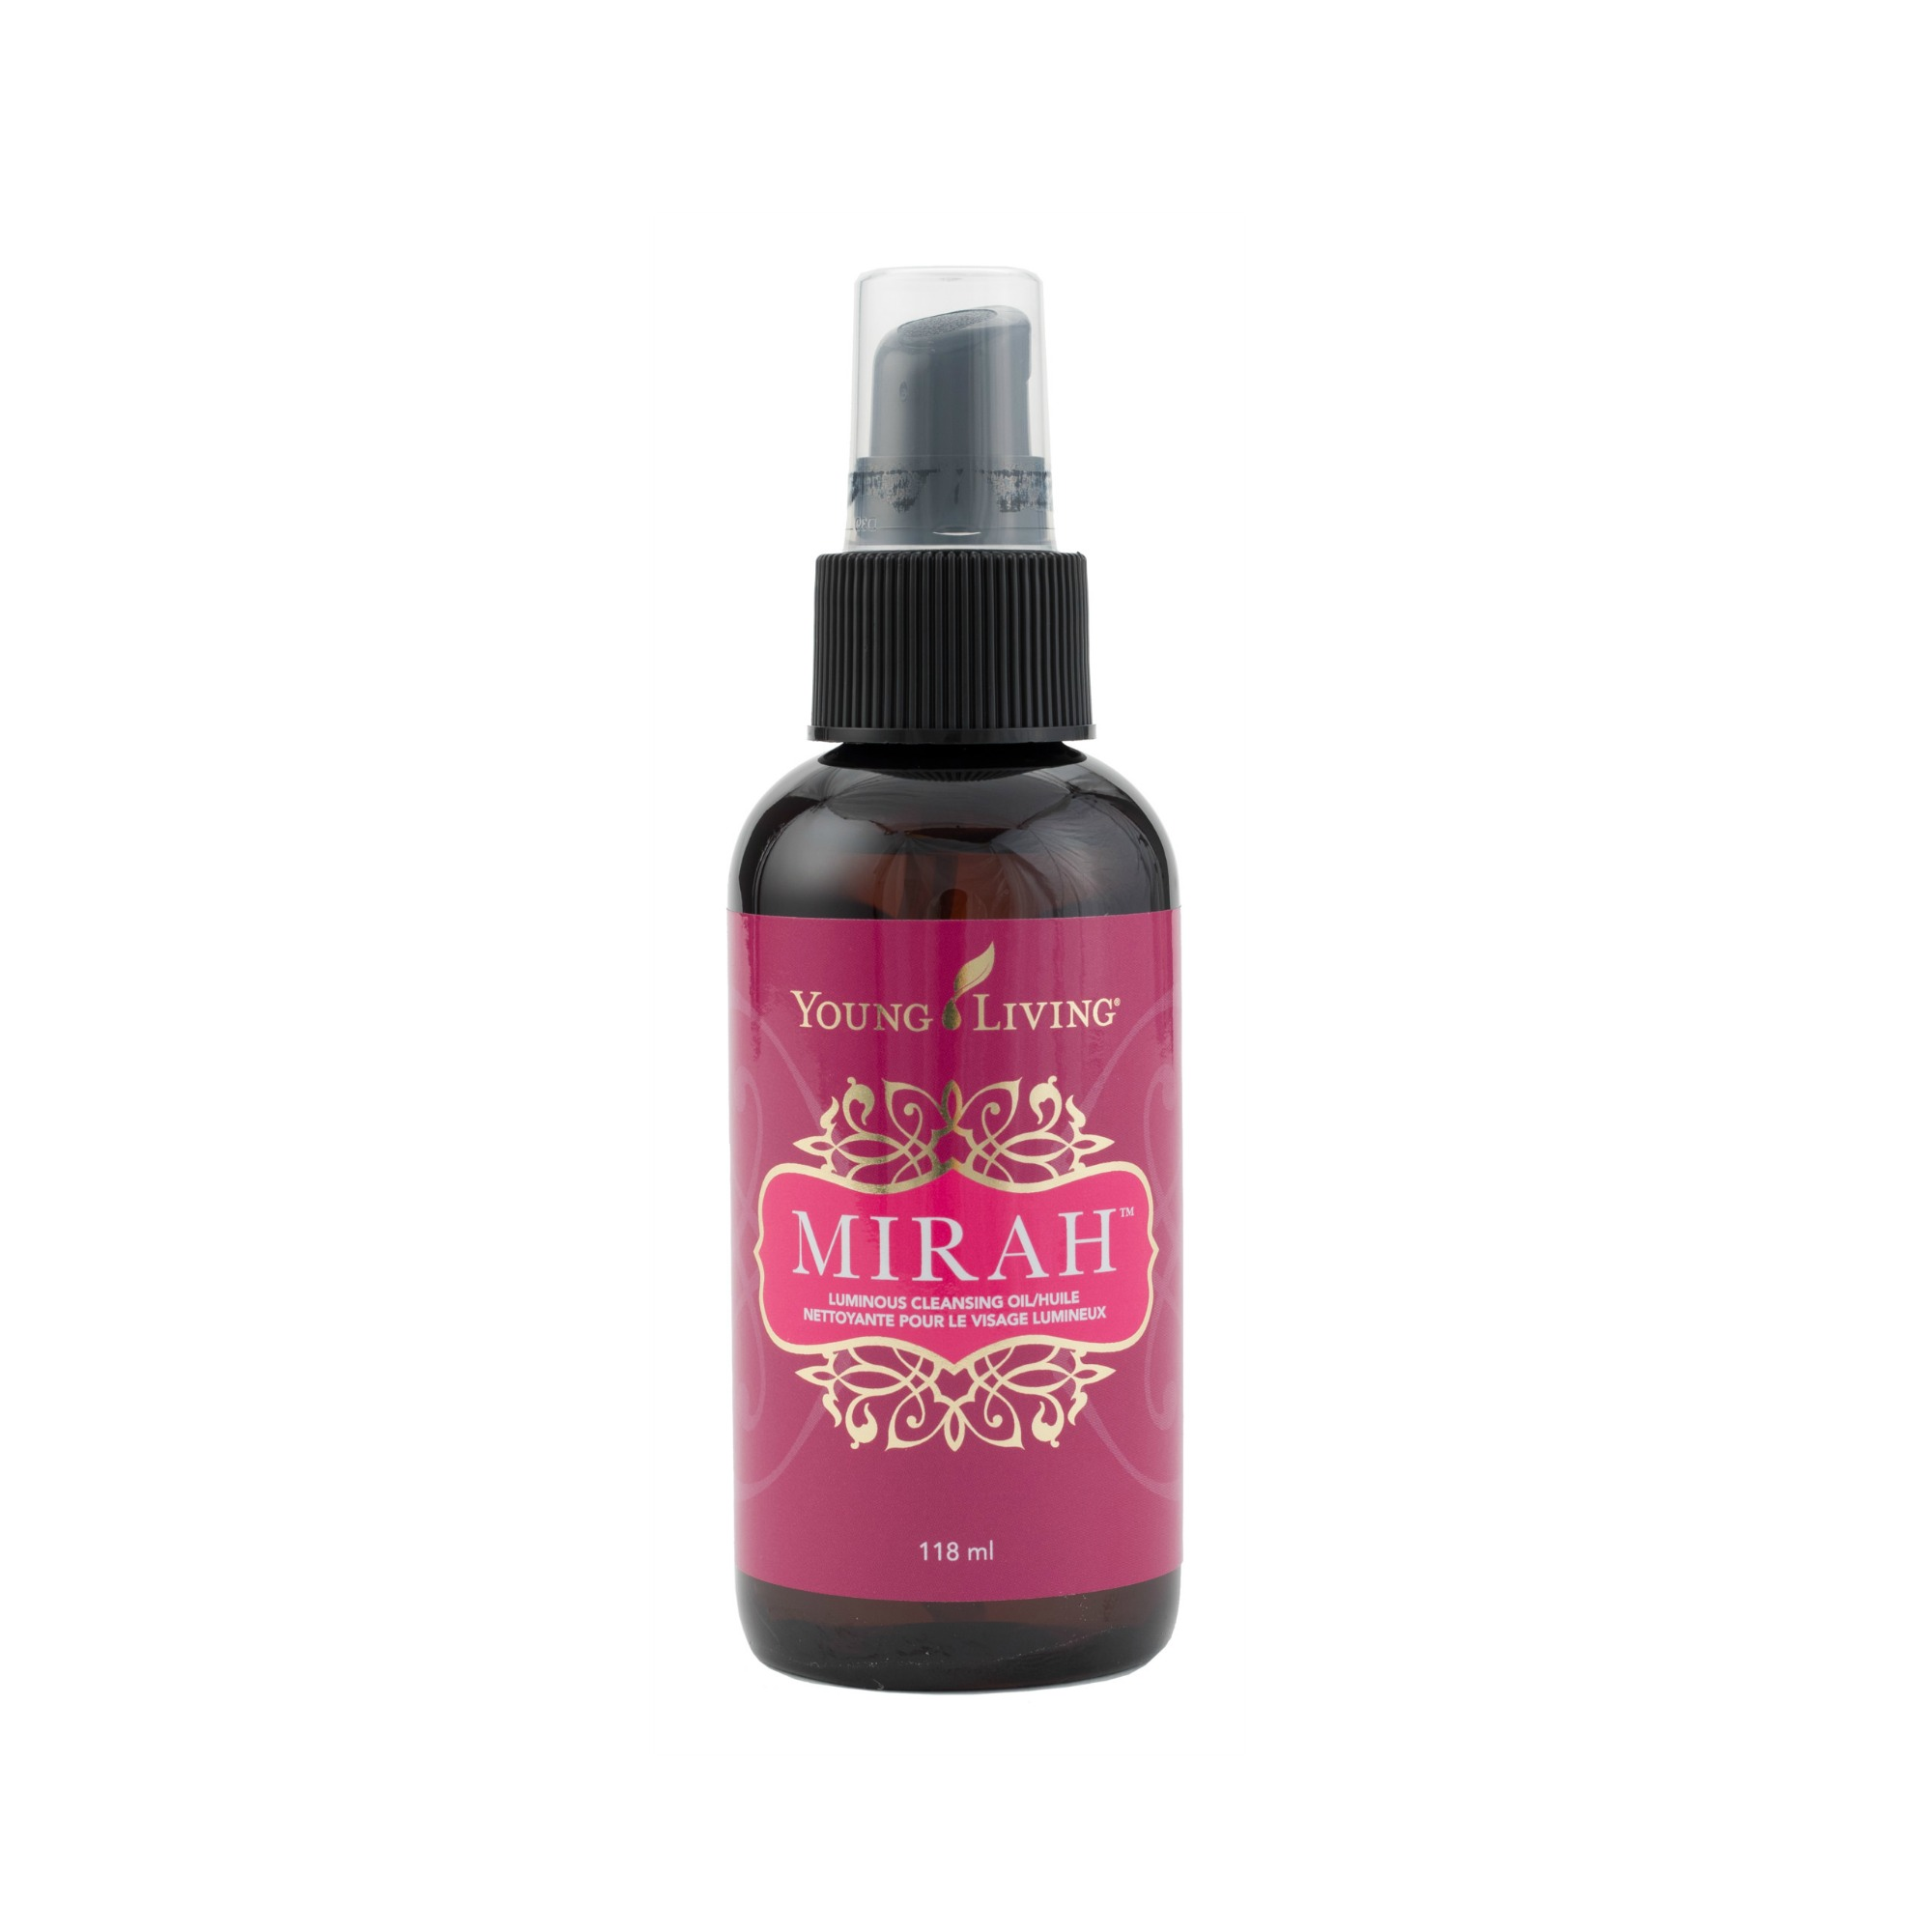 MIRAH LUMINOUS CLEANSING OIL    Many people with oily skin sometimes don't realize that it's best to fight oil with oil - hence why this facial cleanser might be a great one to try! Formulated with ten essential oils, including Rose and Ylang Ylang, as well as ten moisturizing carrier oils, like jojoba and argan, this facial cleanser removes pore-clogging impurities without stripping away the natural oils your skin needs. Simply massage into skin to dissolve makeup and other impurities, and rinse with water.   Click here   to learn more about this product.